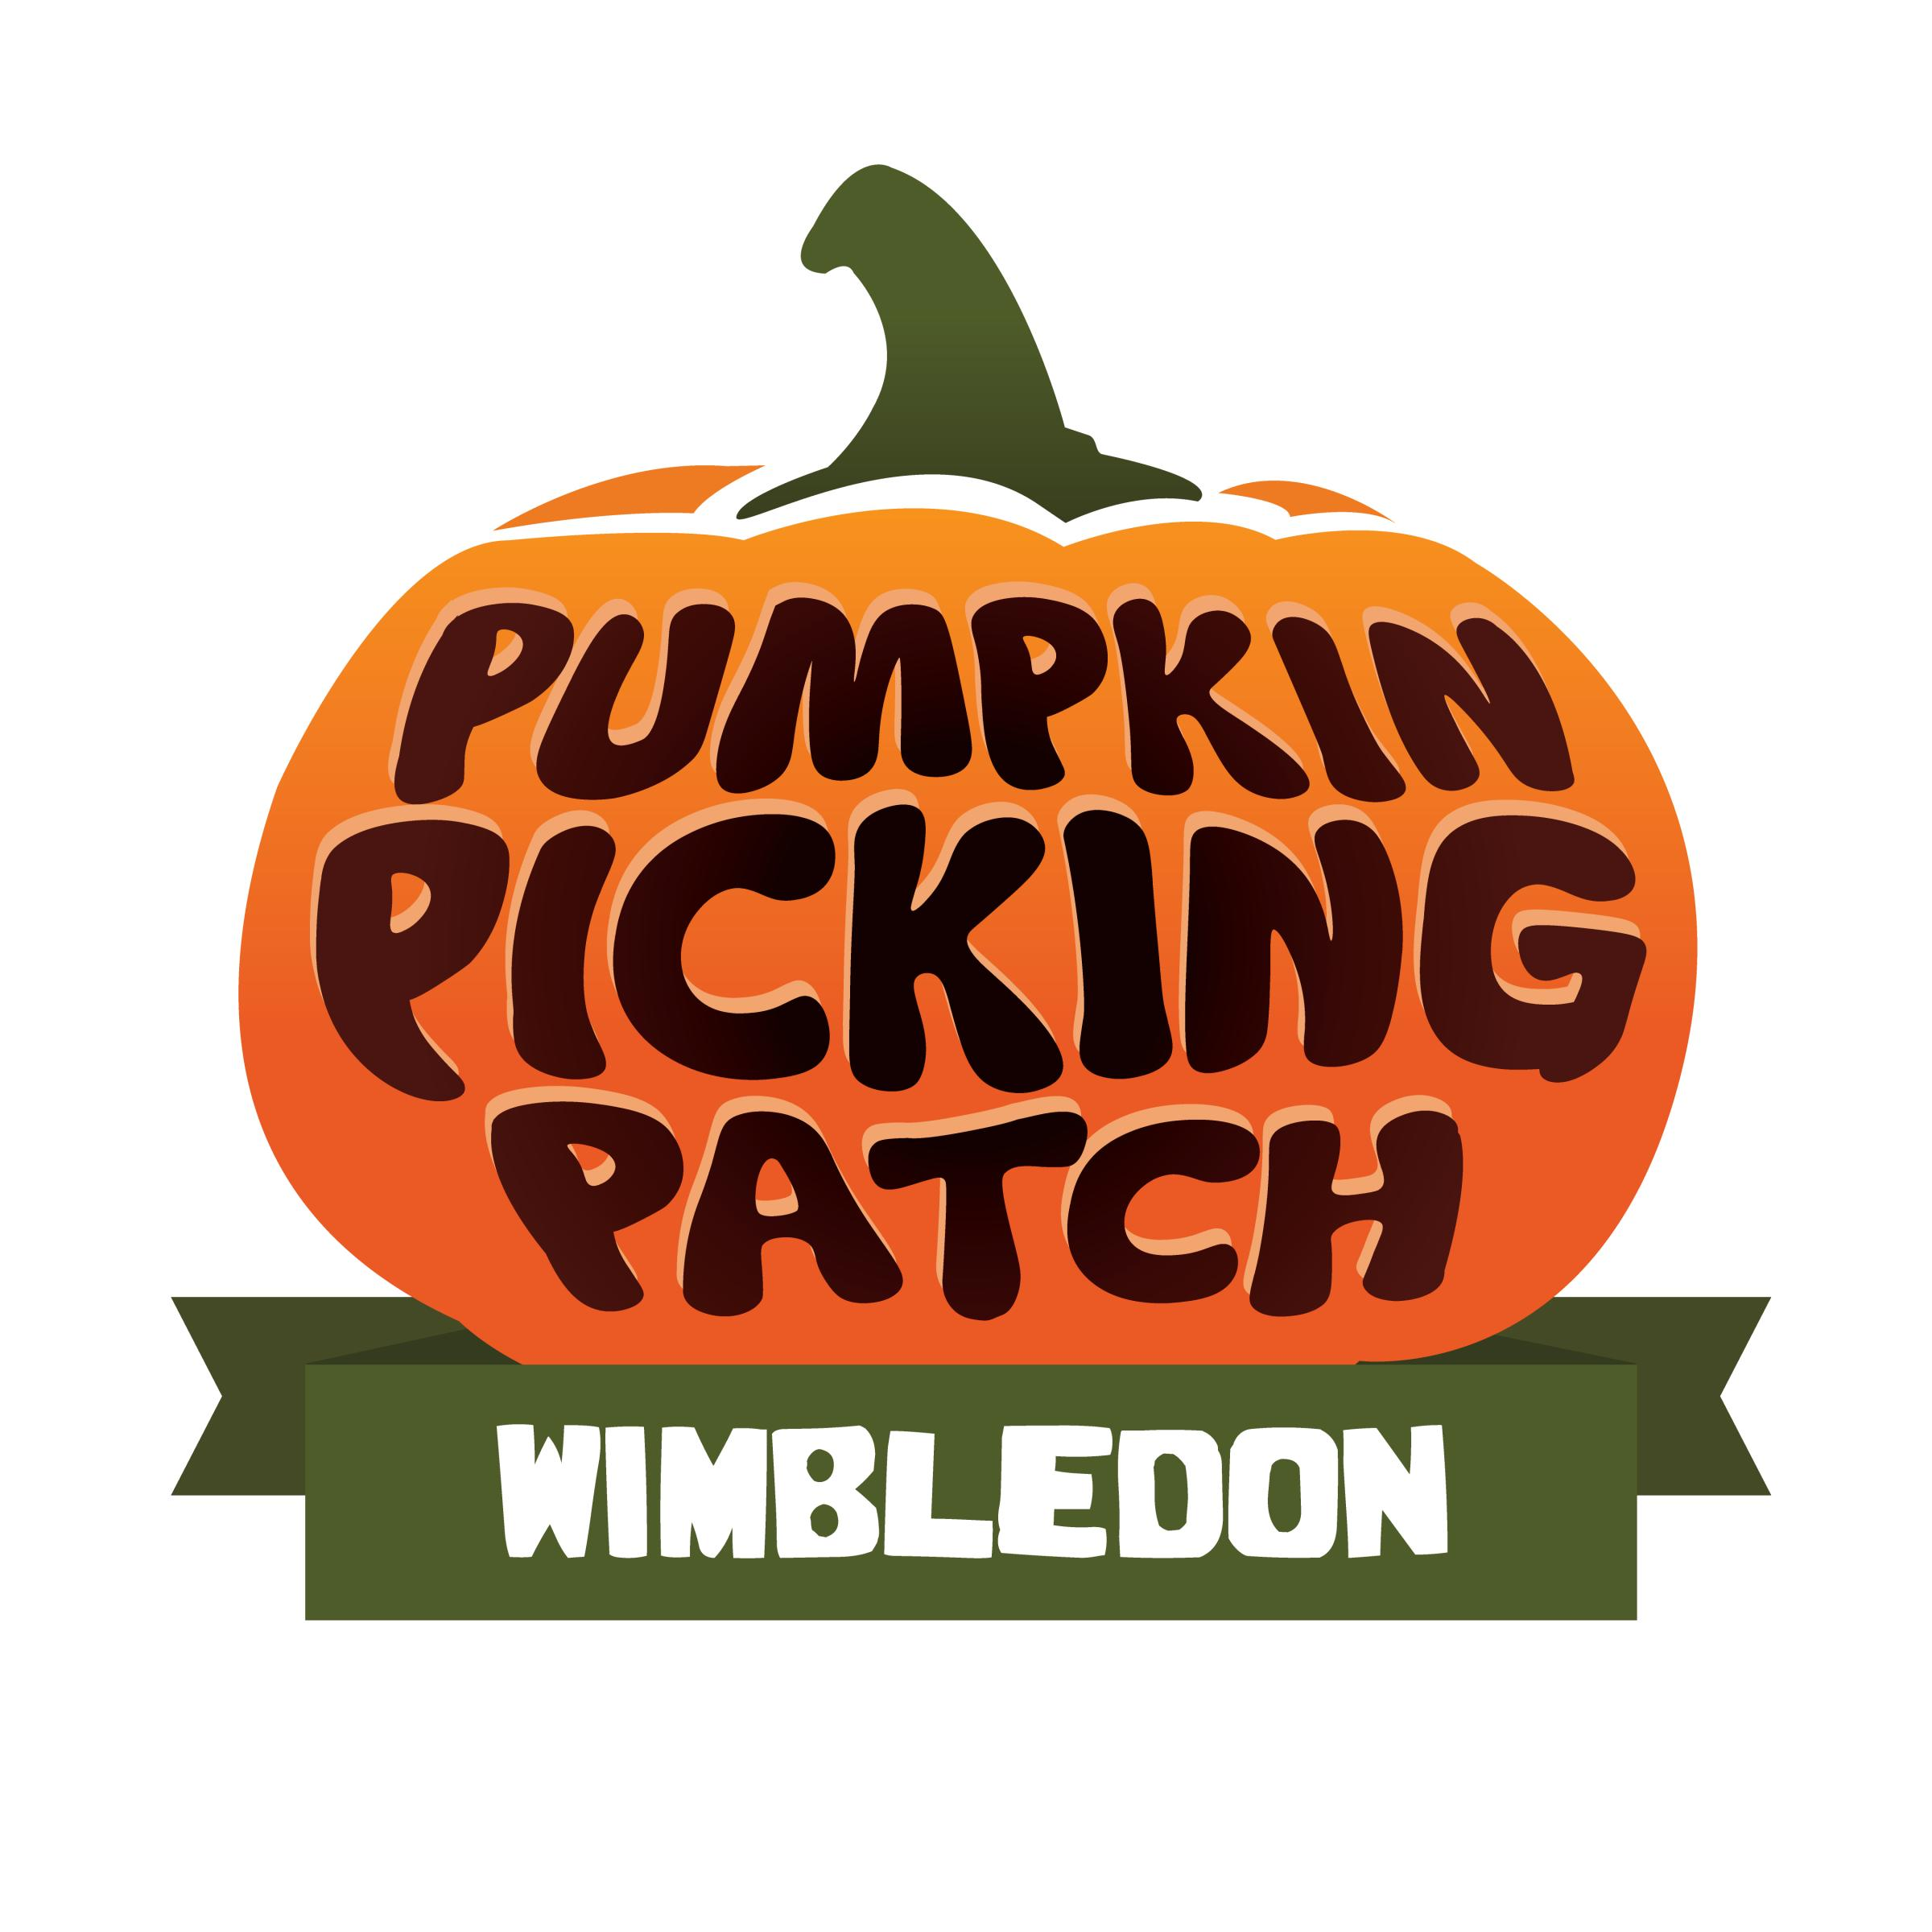 Pumpkin Picking Patch Wimbledon